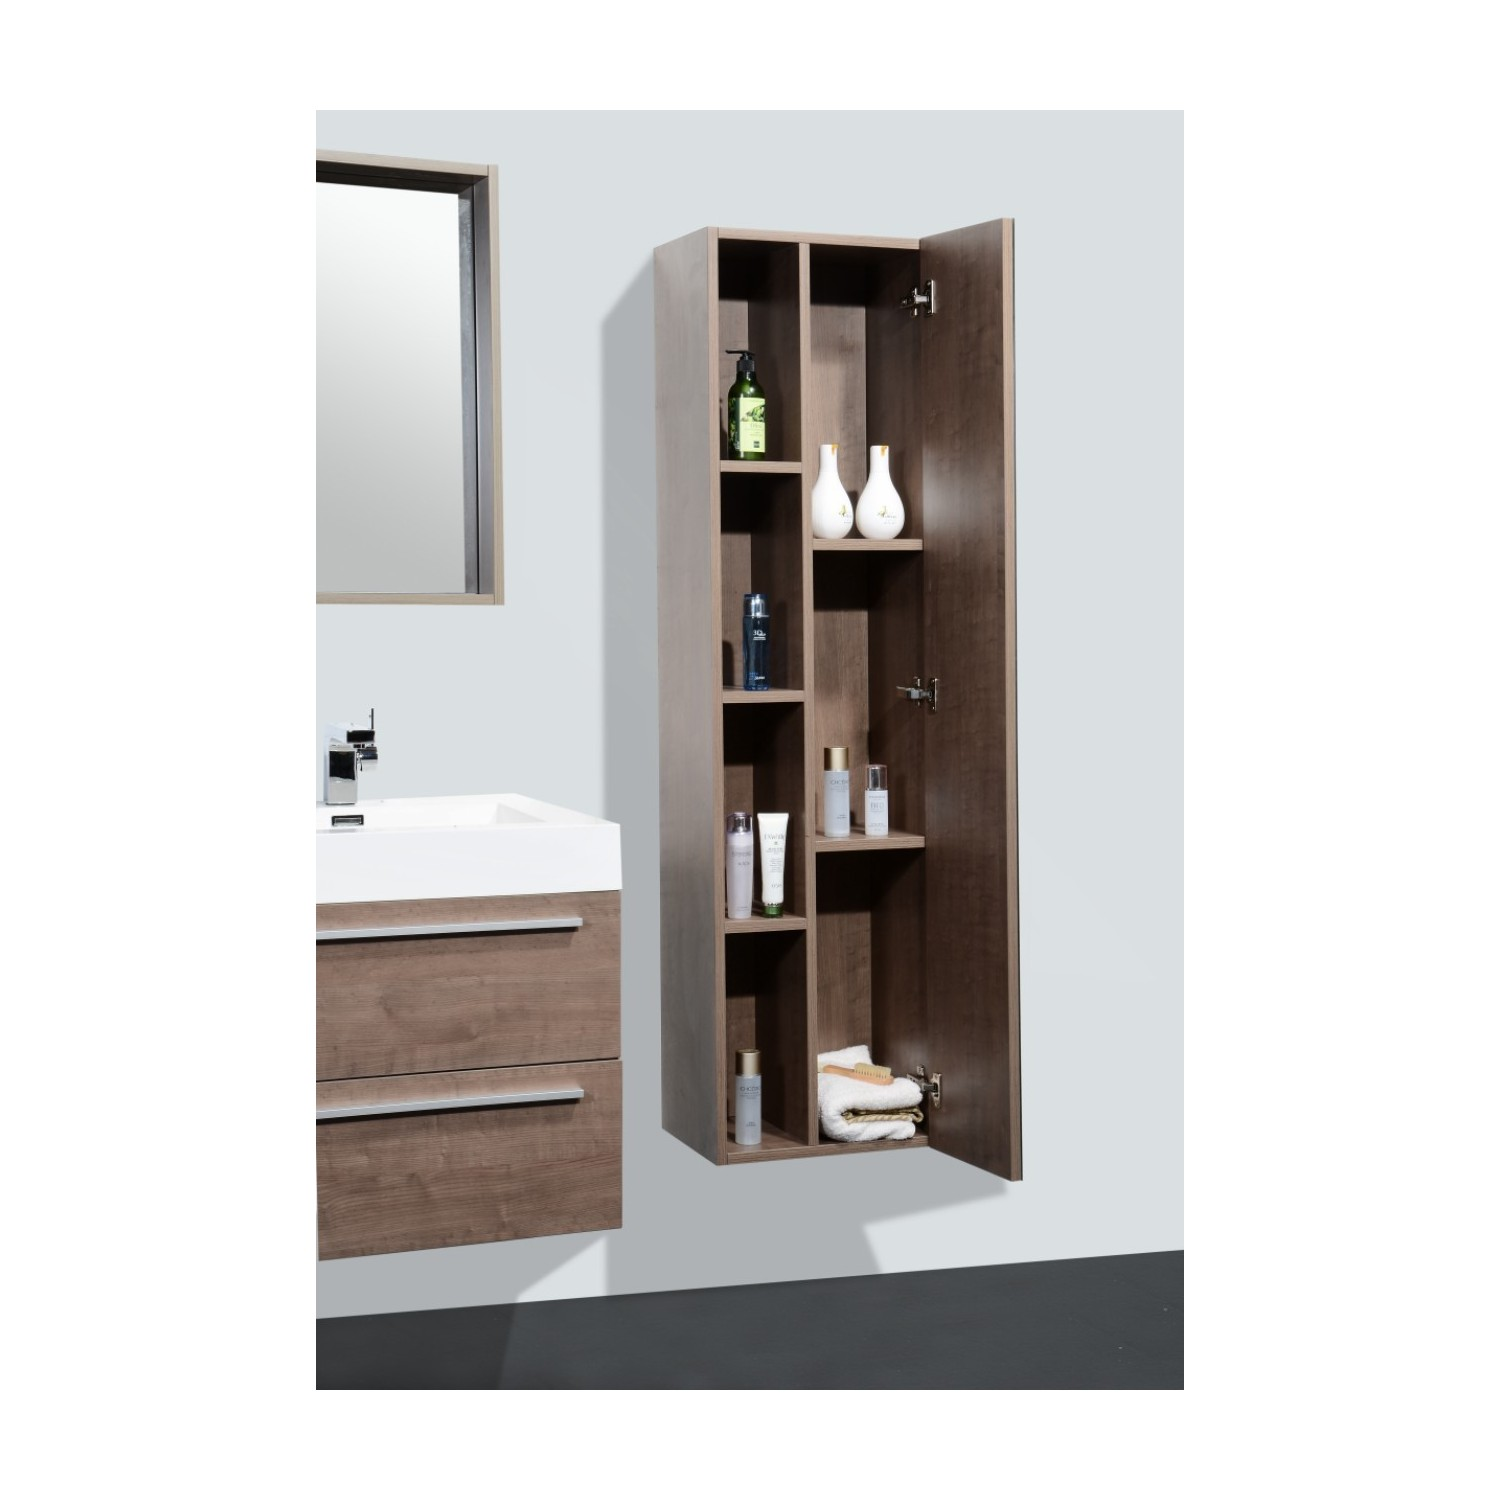 import diffusion ensemble meuble salle de bains vasque simple colonne miroir malaga. Black Bedroom Furniture Sets. Home Design Ideas